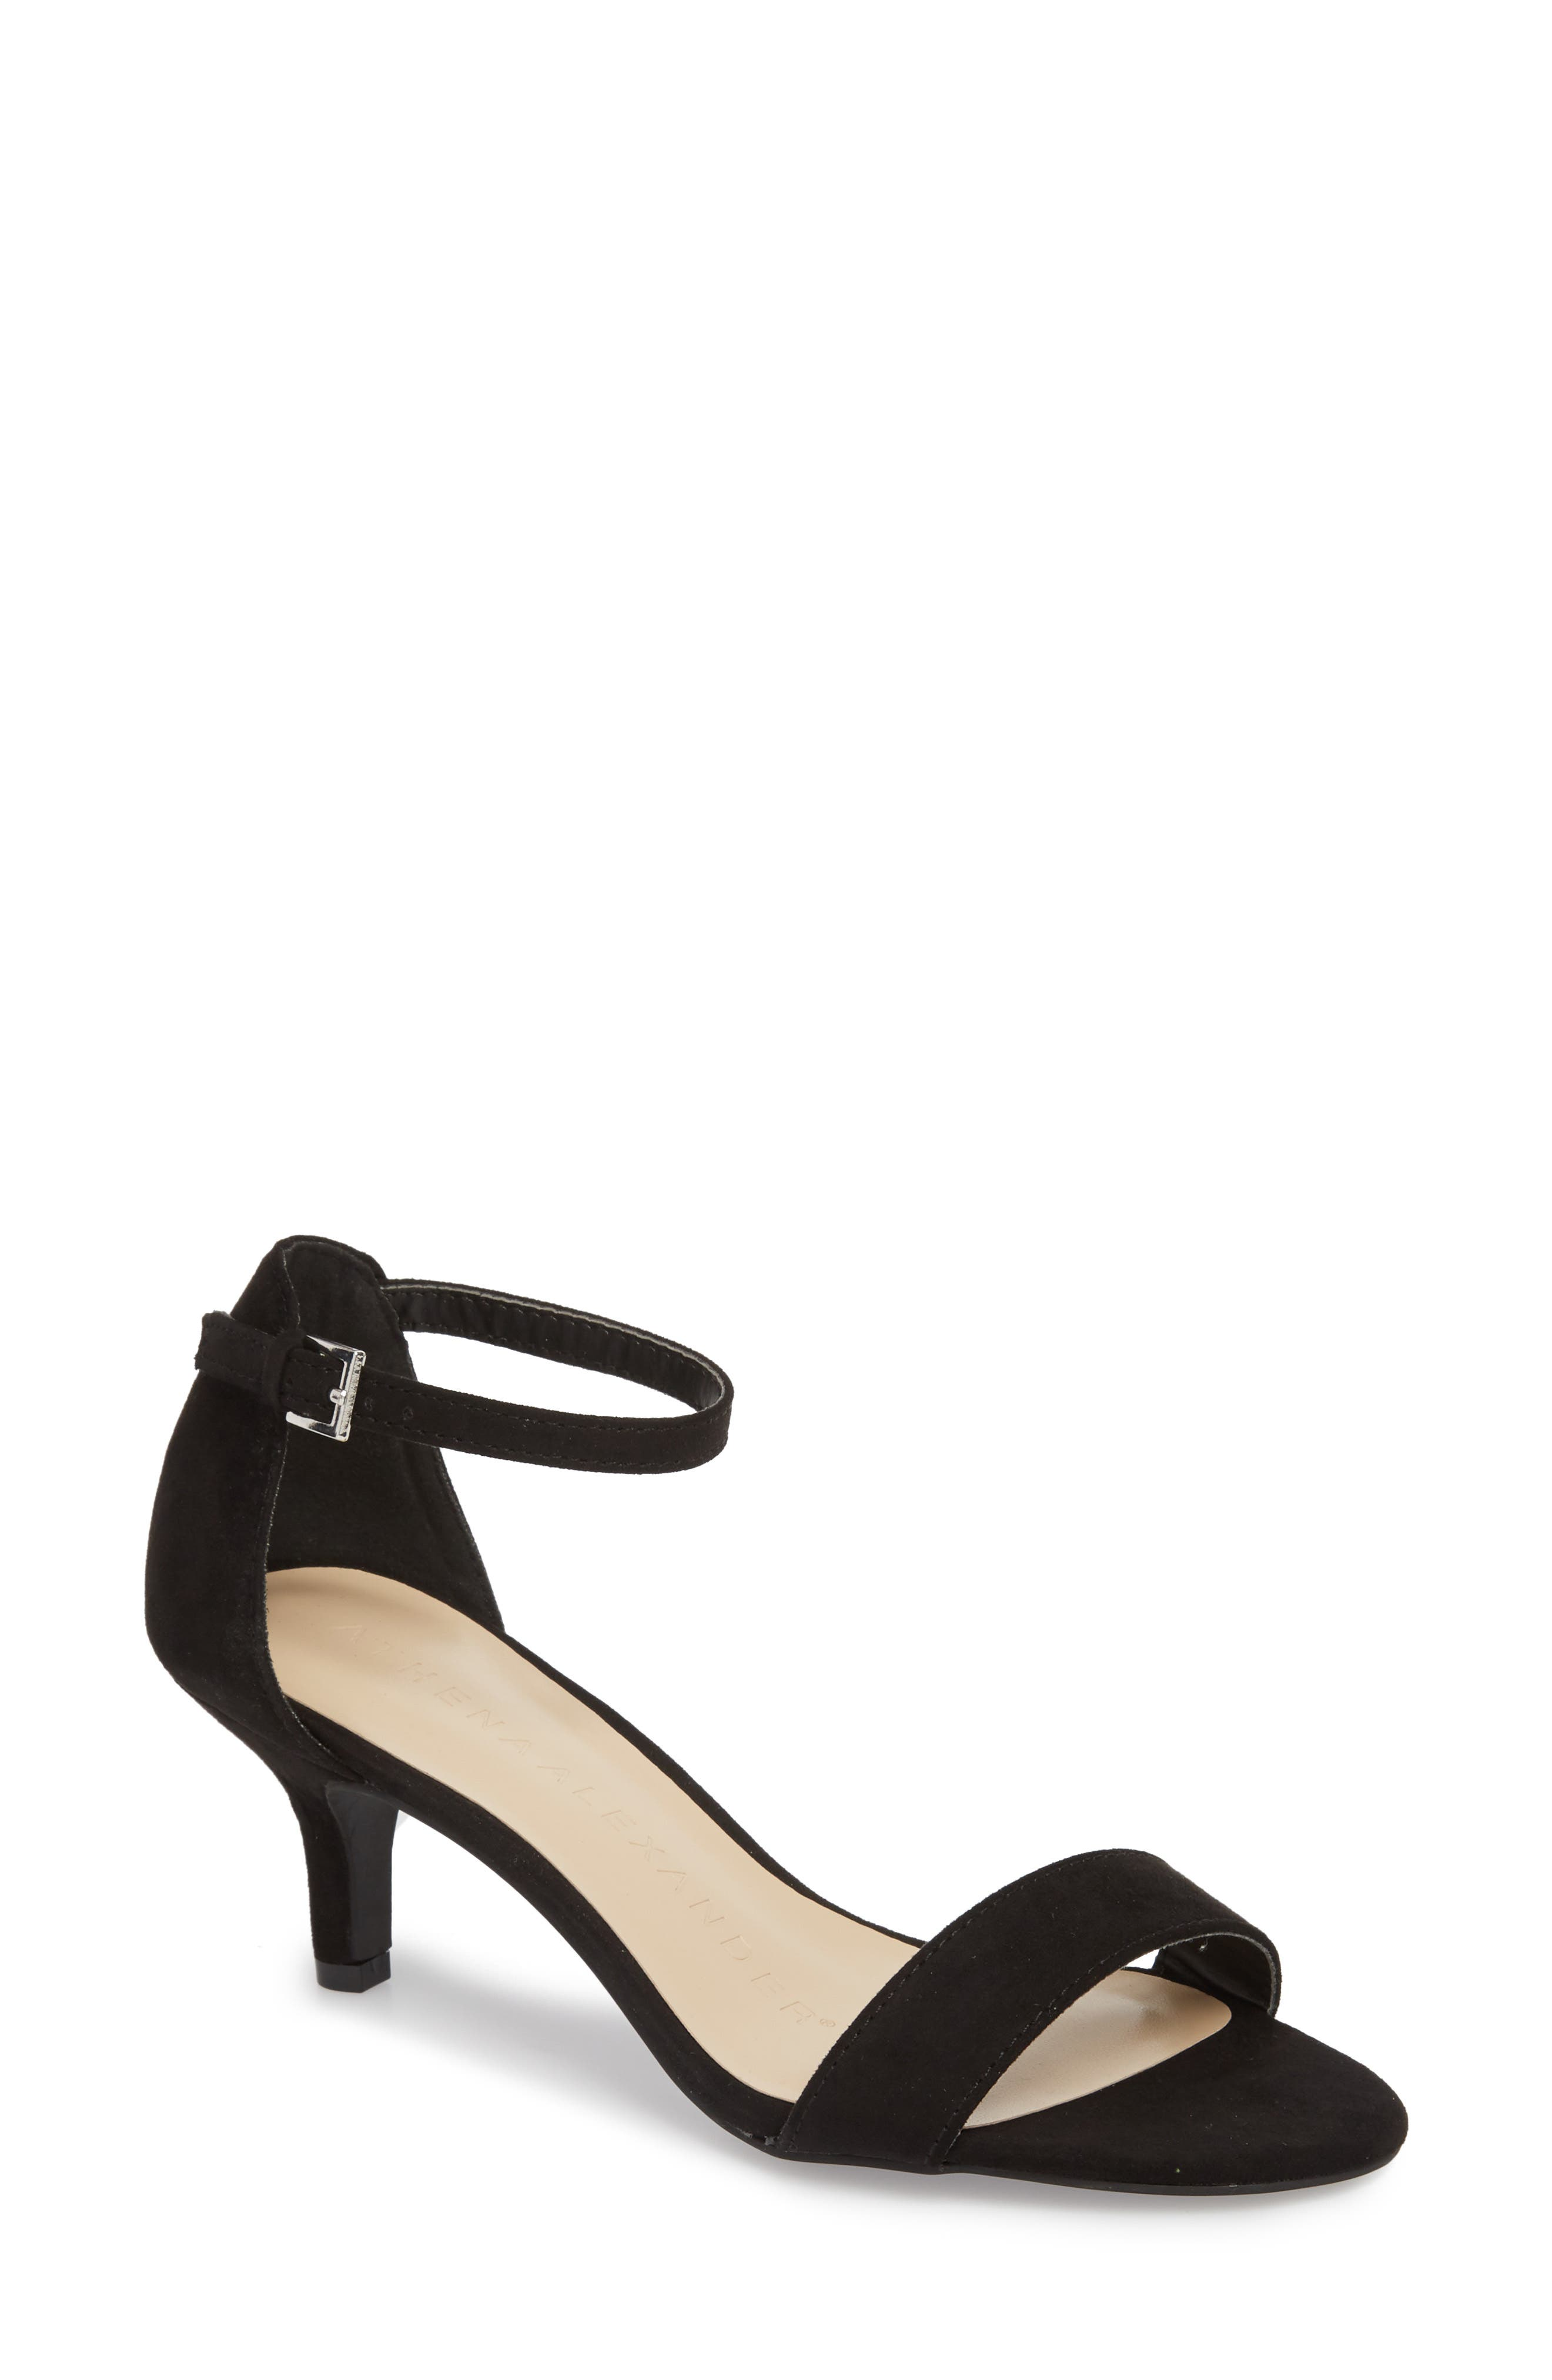 Monroe Sandal,                             Main thumbnail 1, color,                             BLACK SUEDE